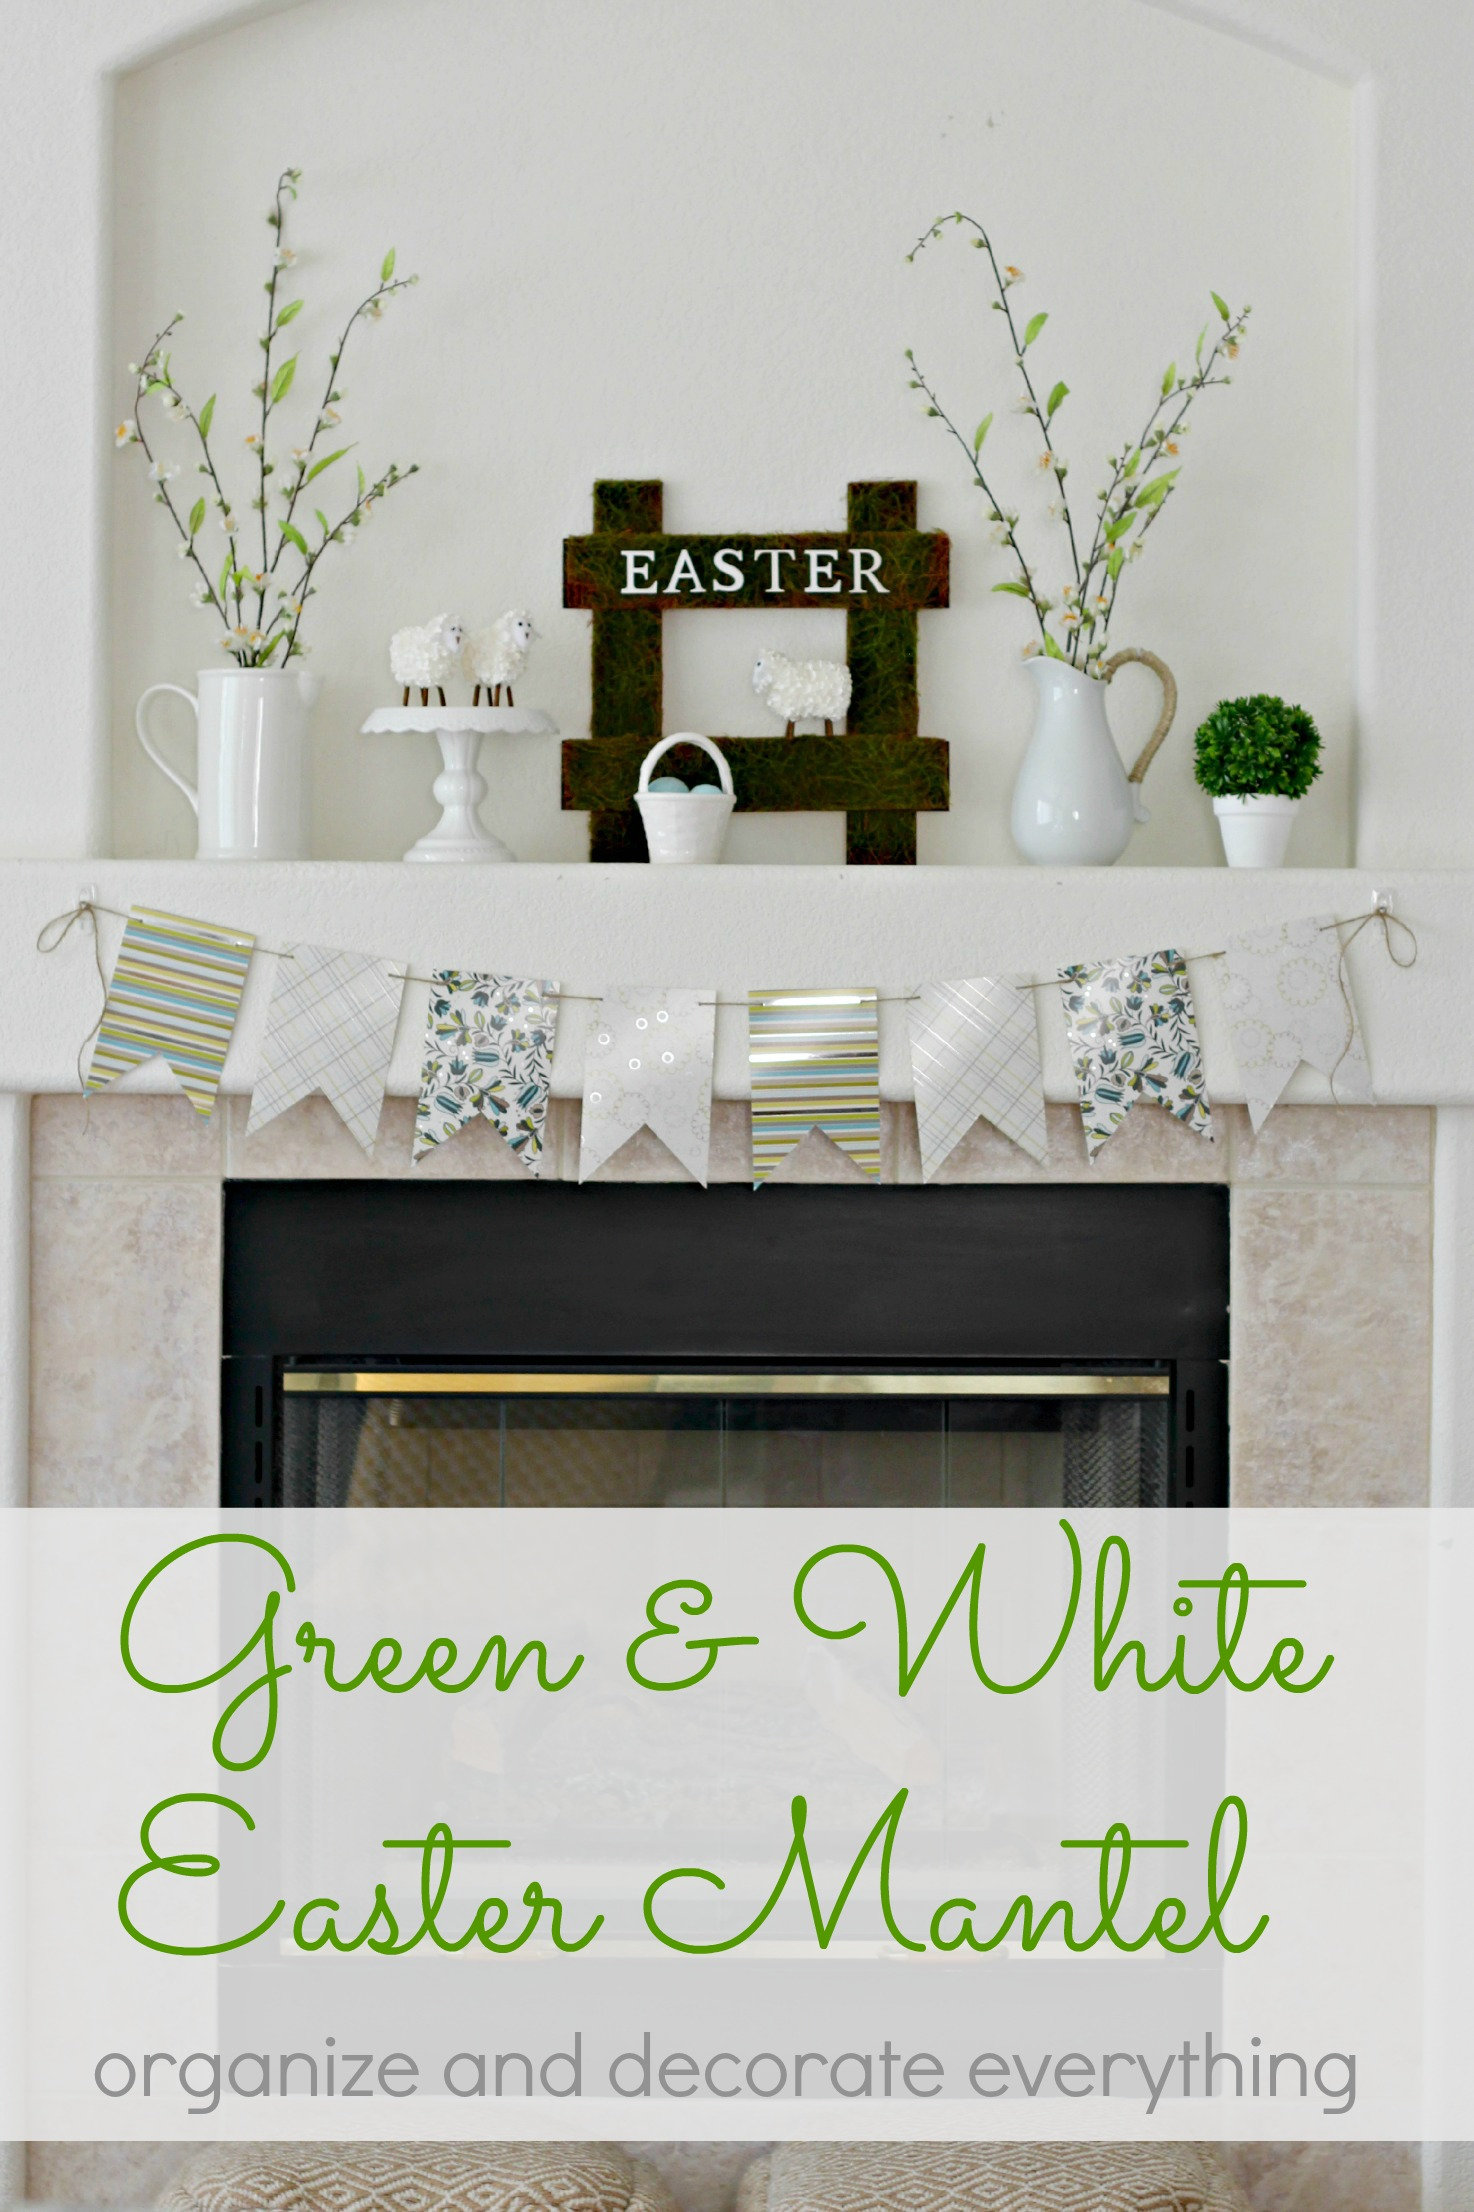 Green and White Easter Mantel Organize and Decorate Everything